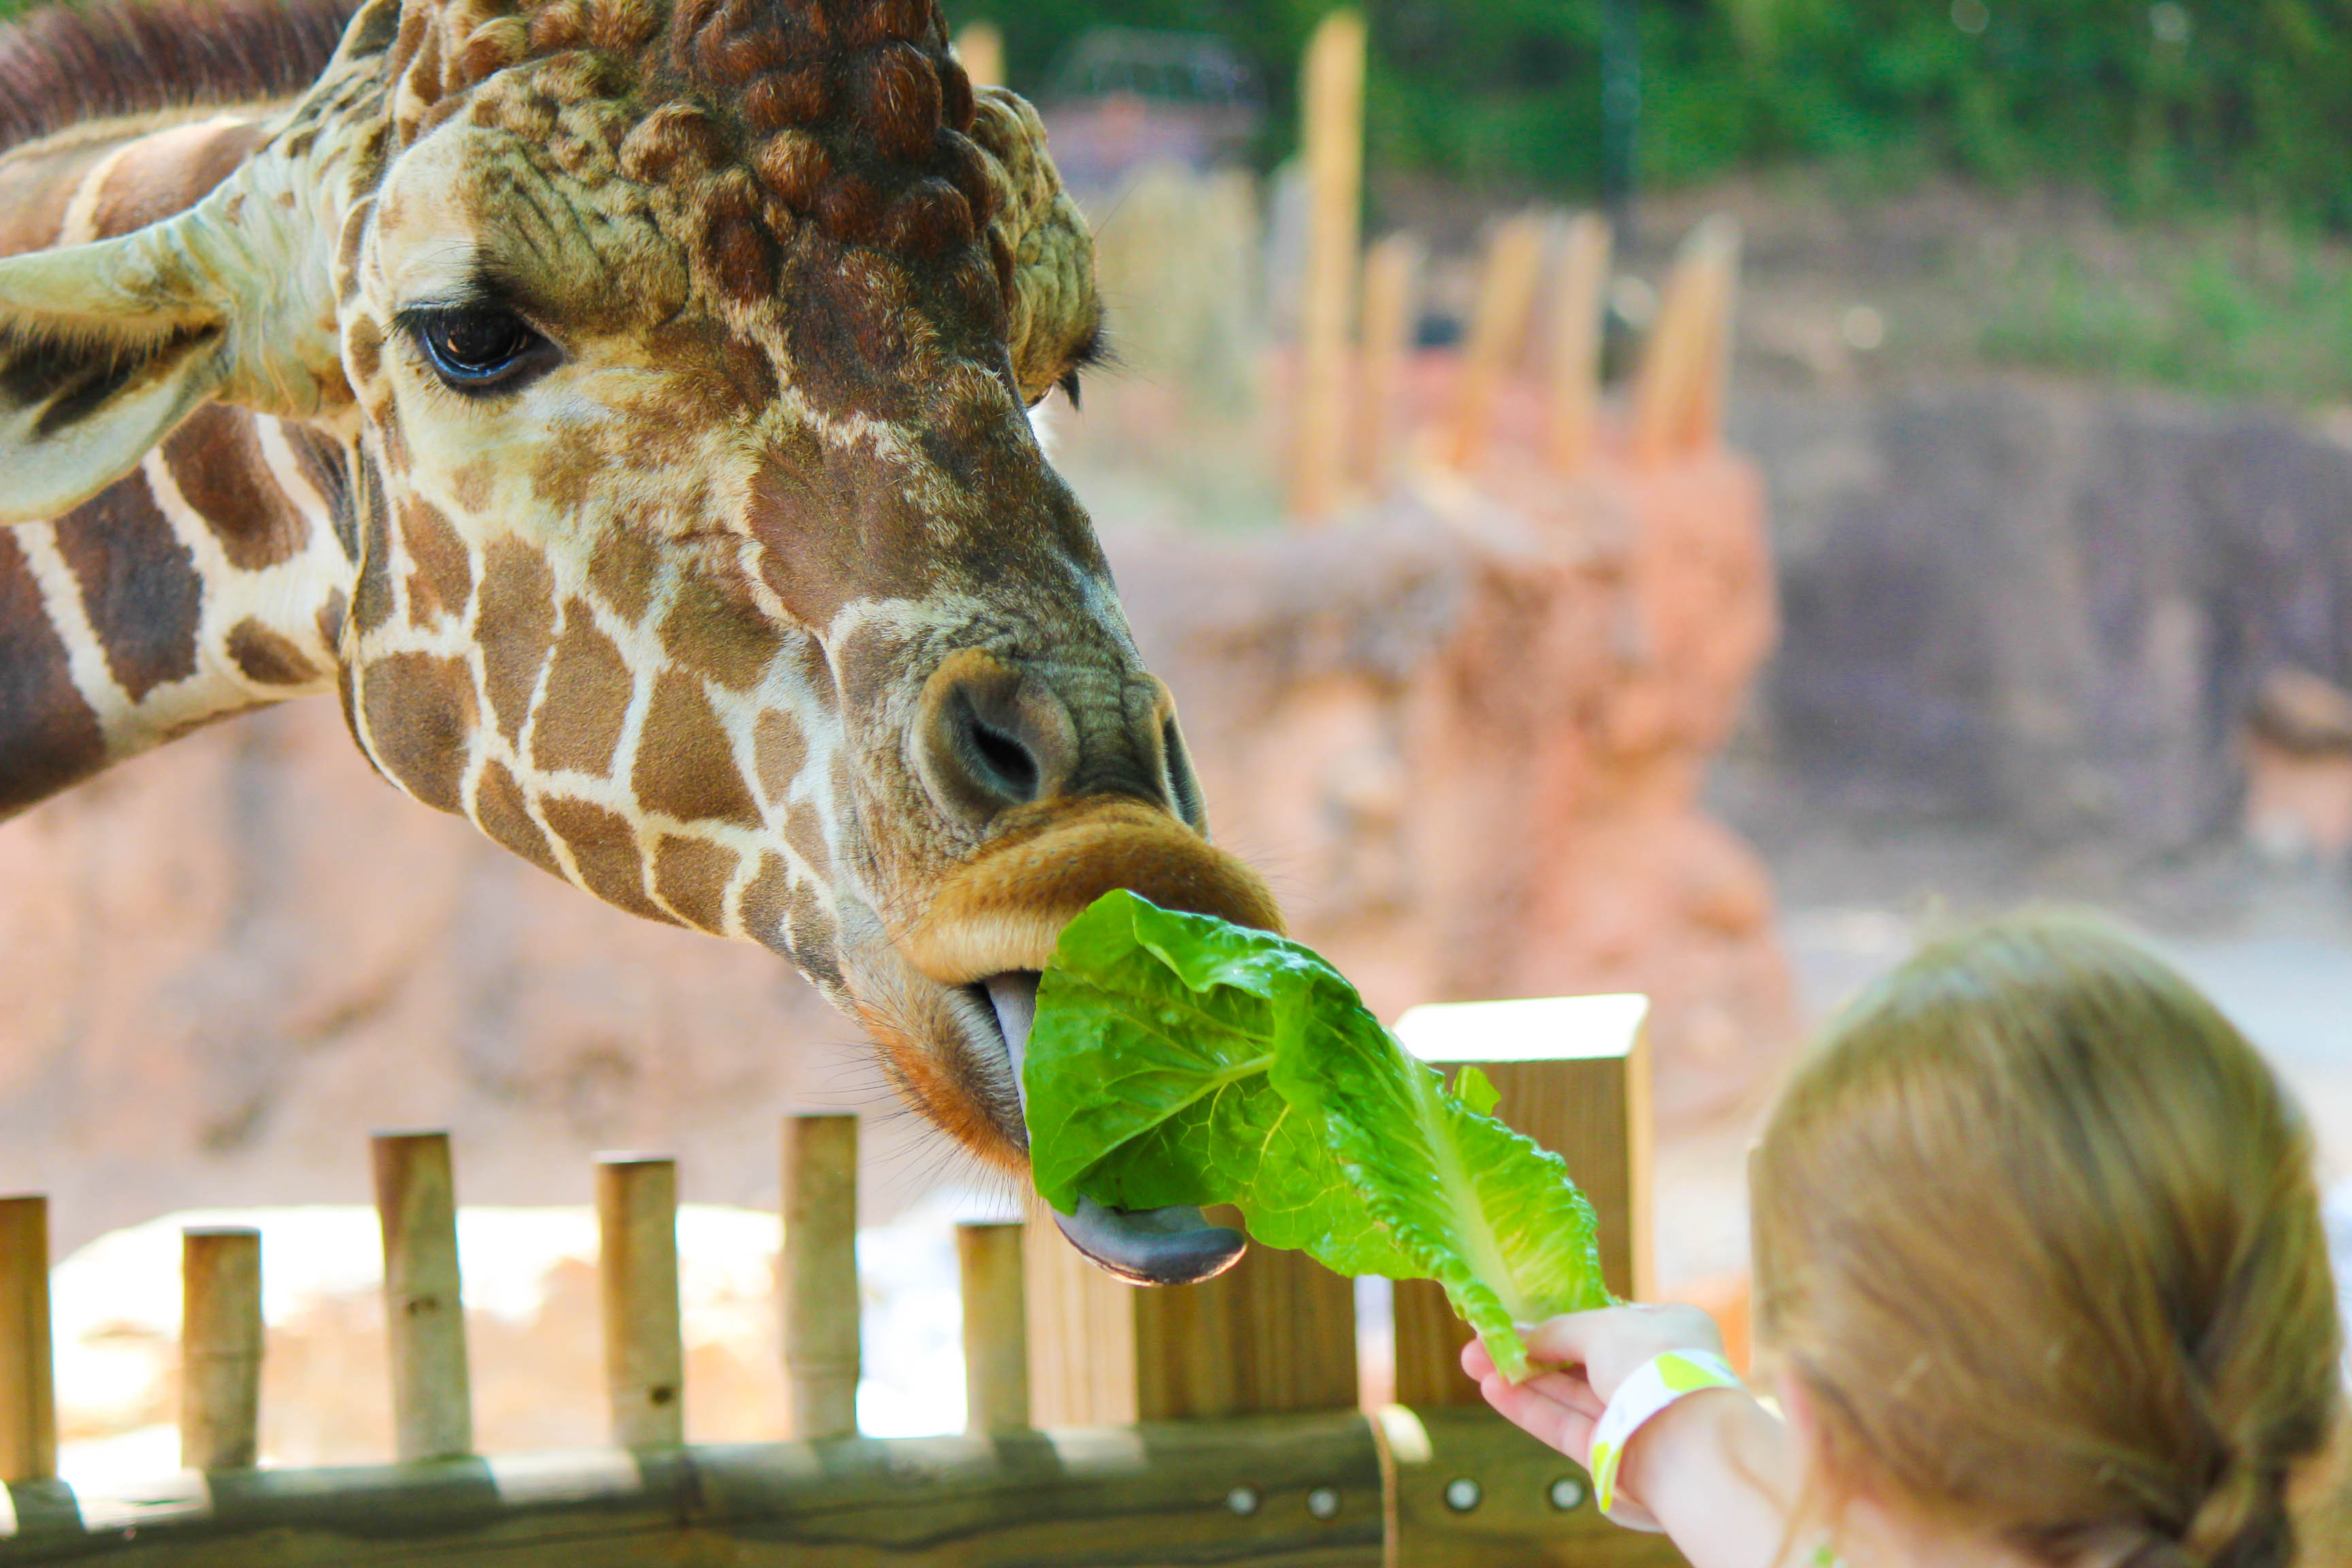 child feeding giraffe lettuce